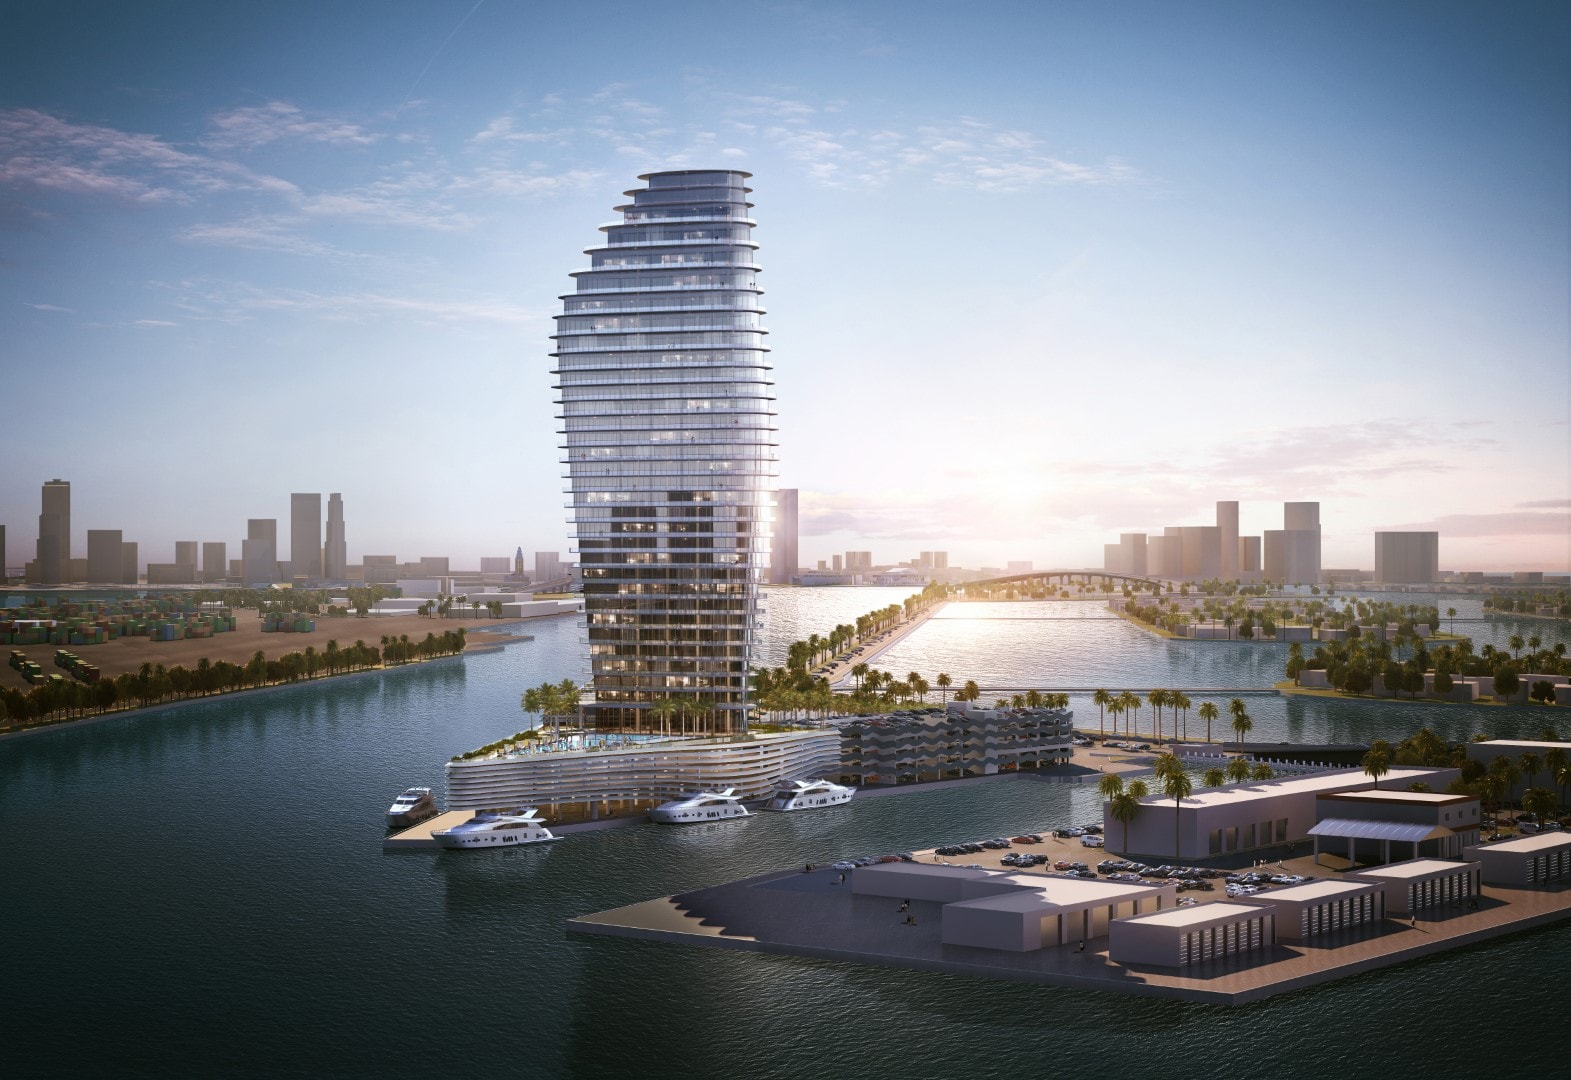 Related Group Reveals Arquitectonica-Designed One Island Park On Miami Beach's Terminal Island